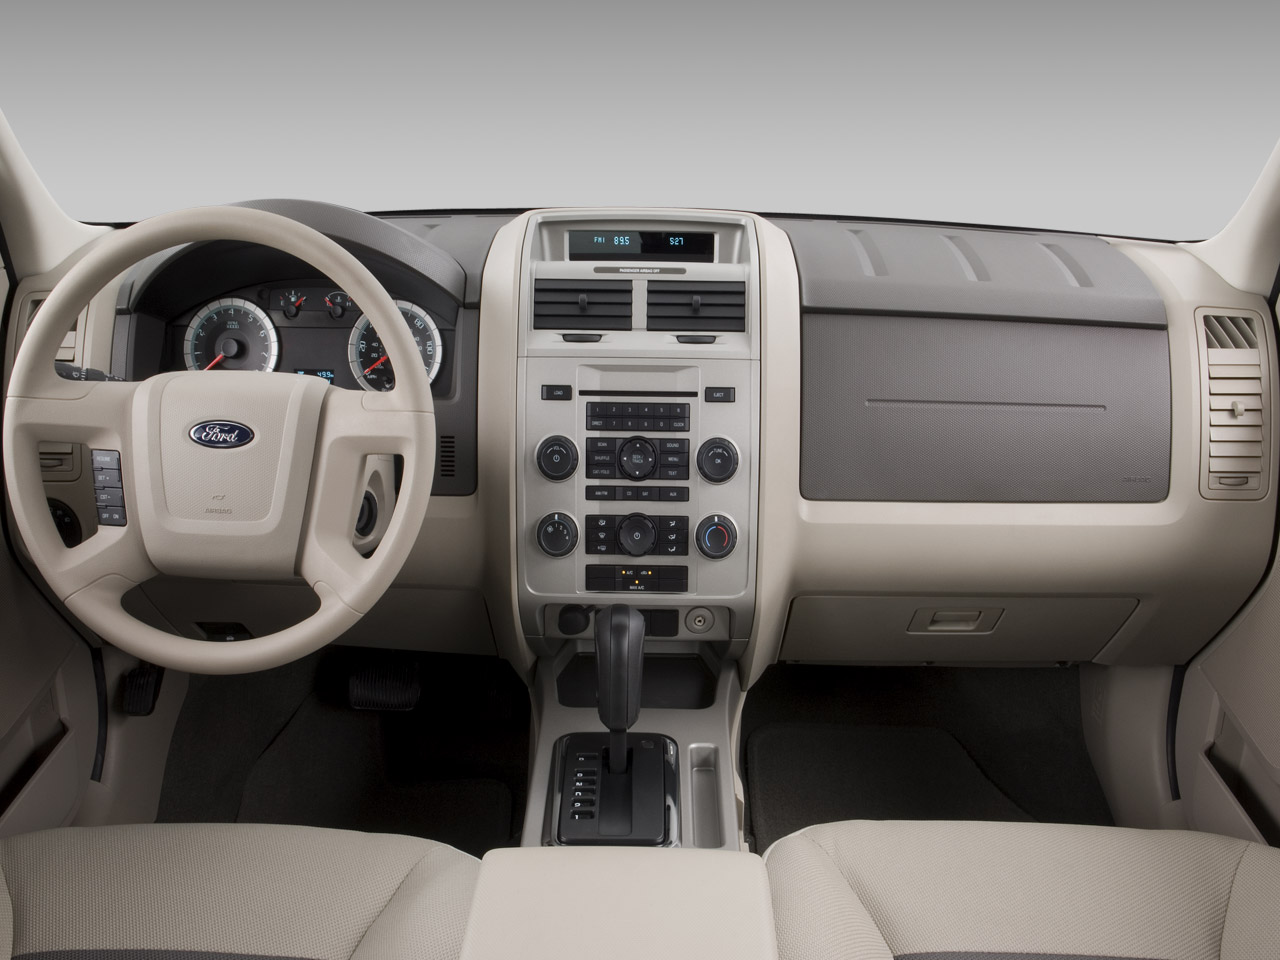 2008 Ford Escape Road Tests Reviews And Drivens